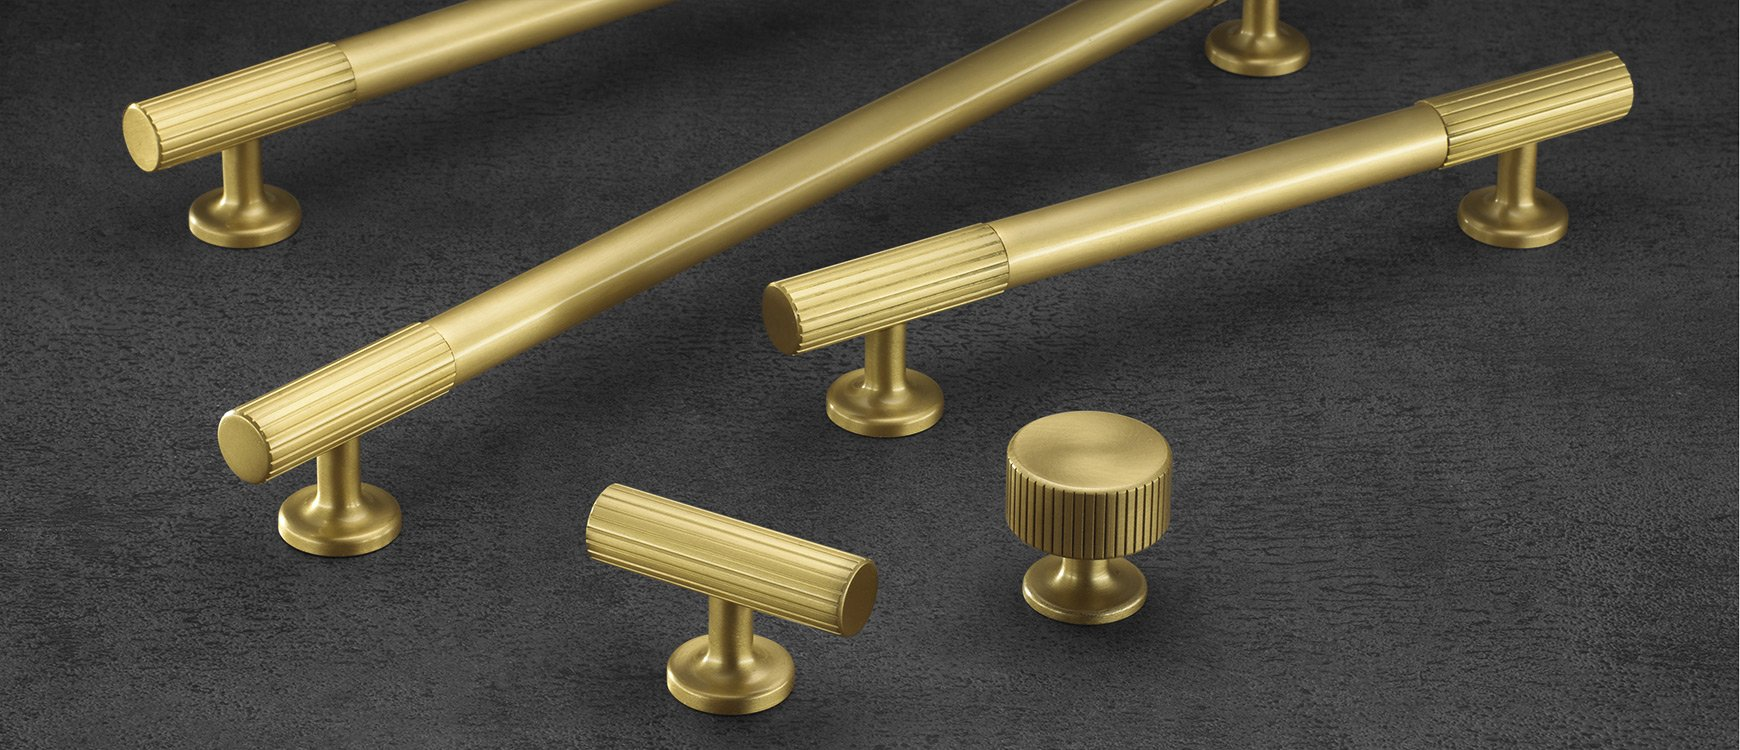 and pull dressers handles for furniture kitchen copper hardware knobs cupboard door discount cabinet